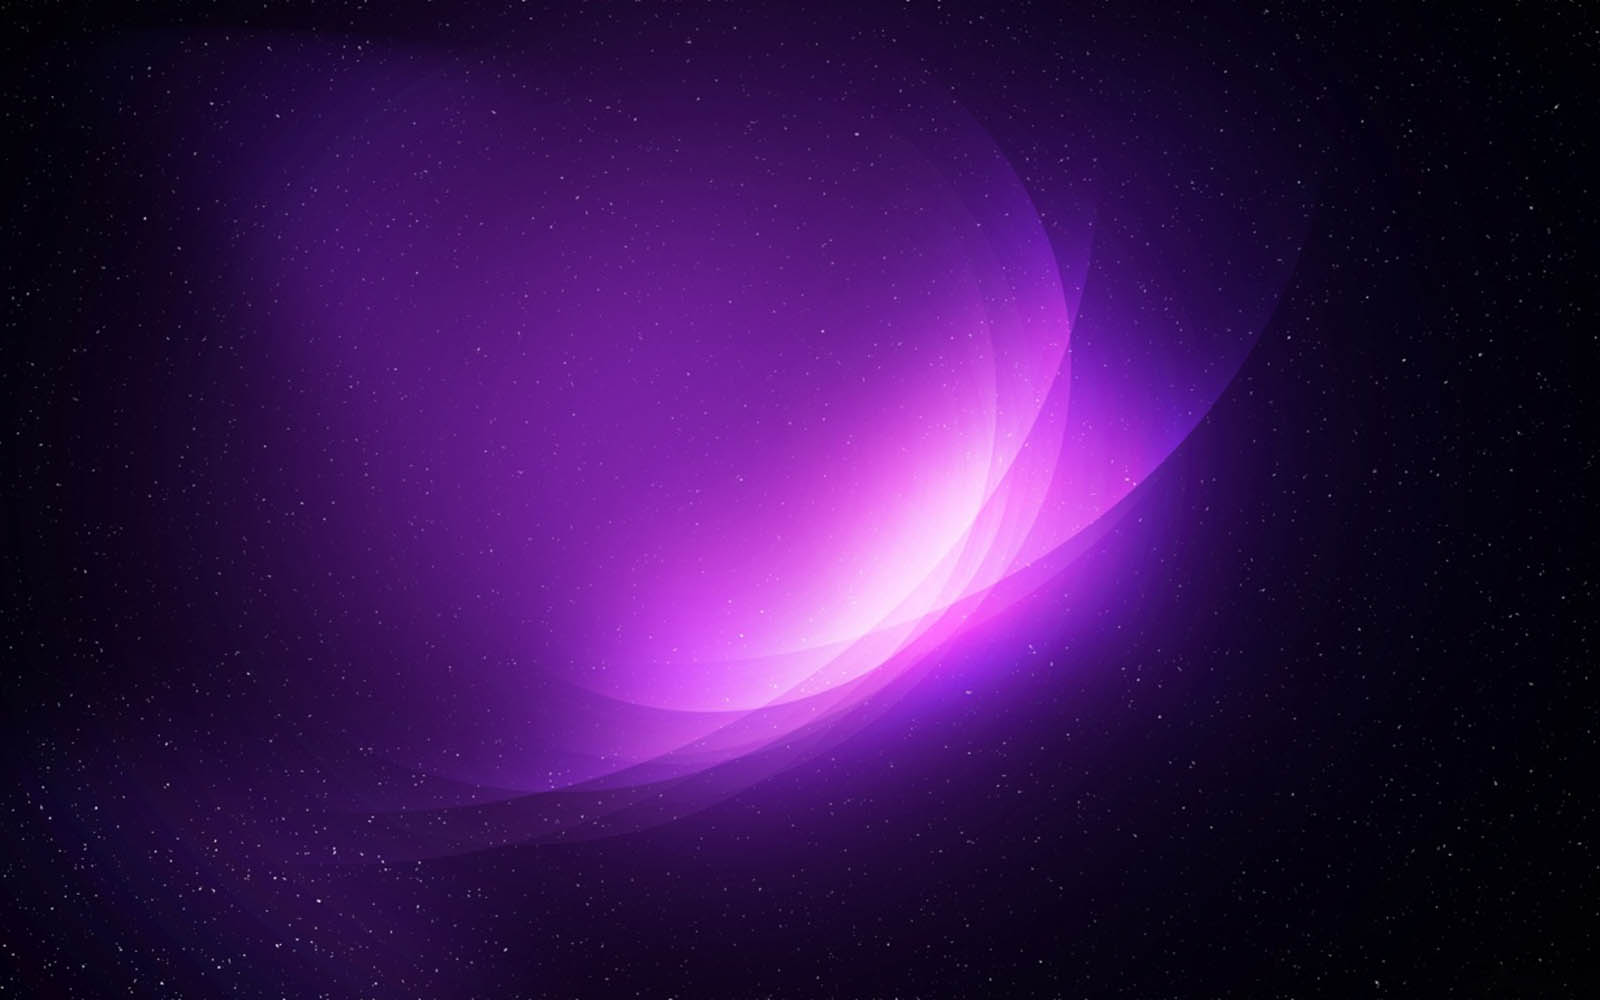 purple high-quality background